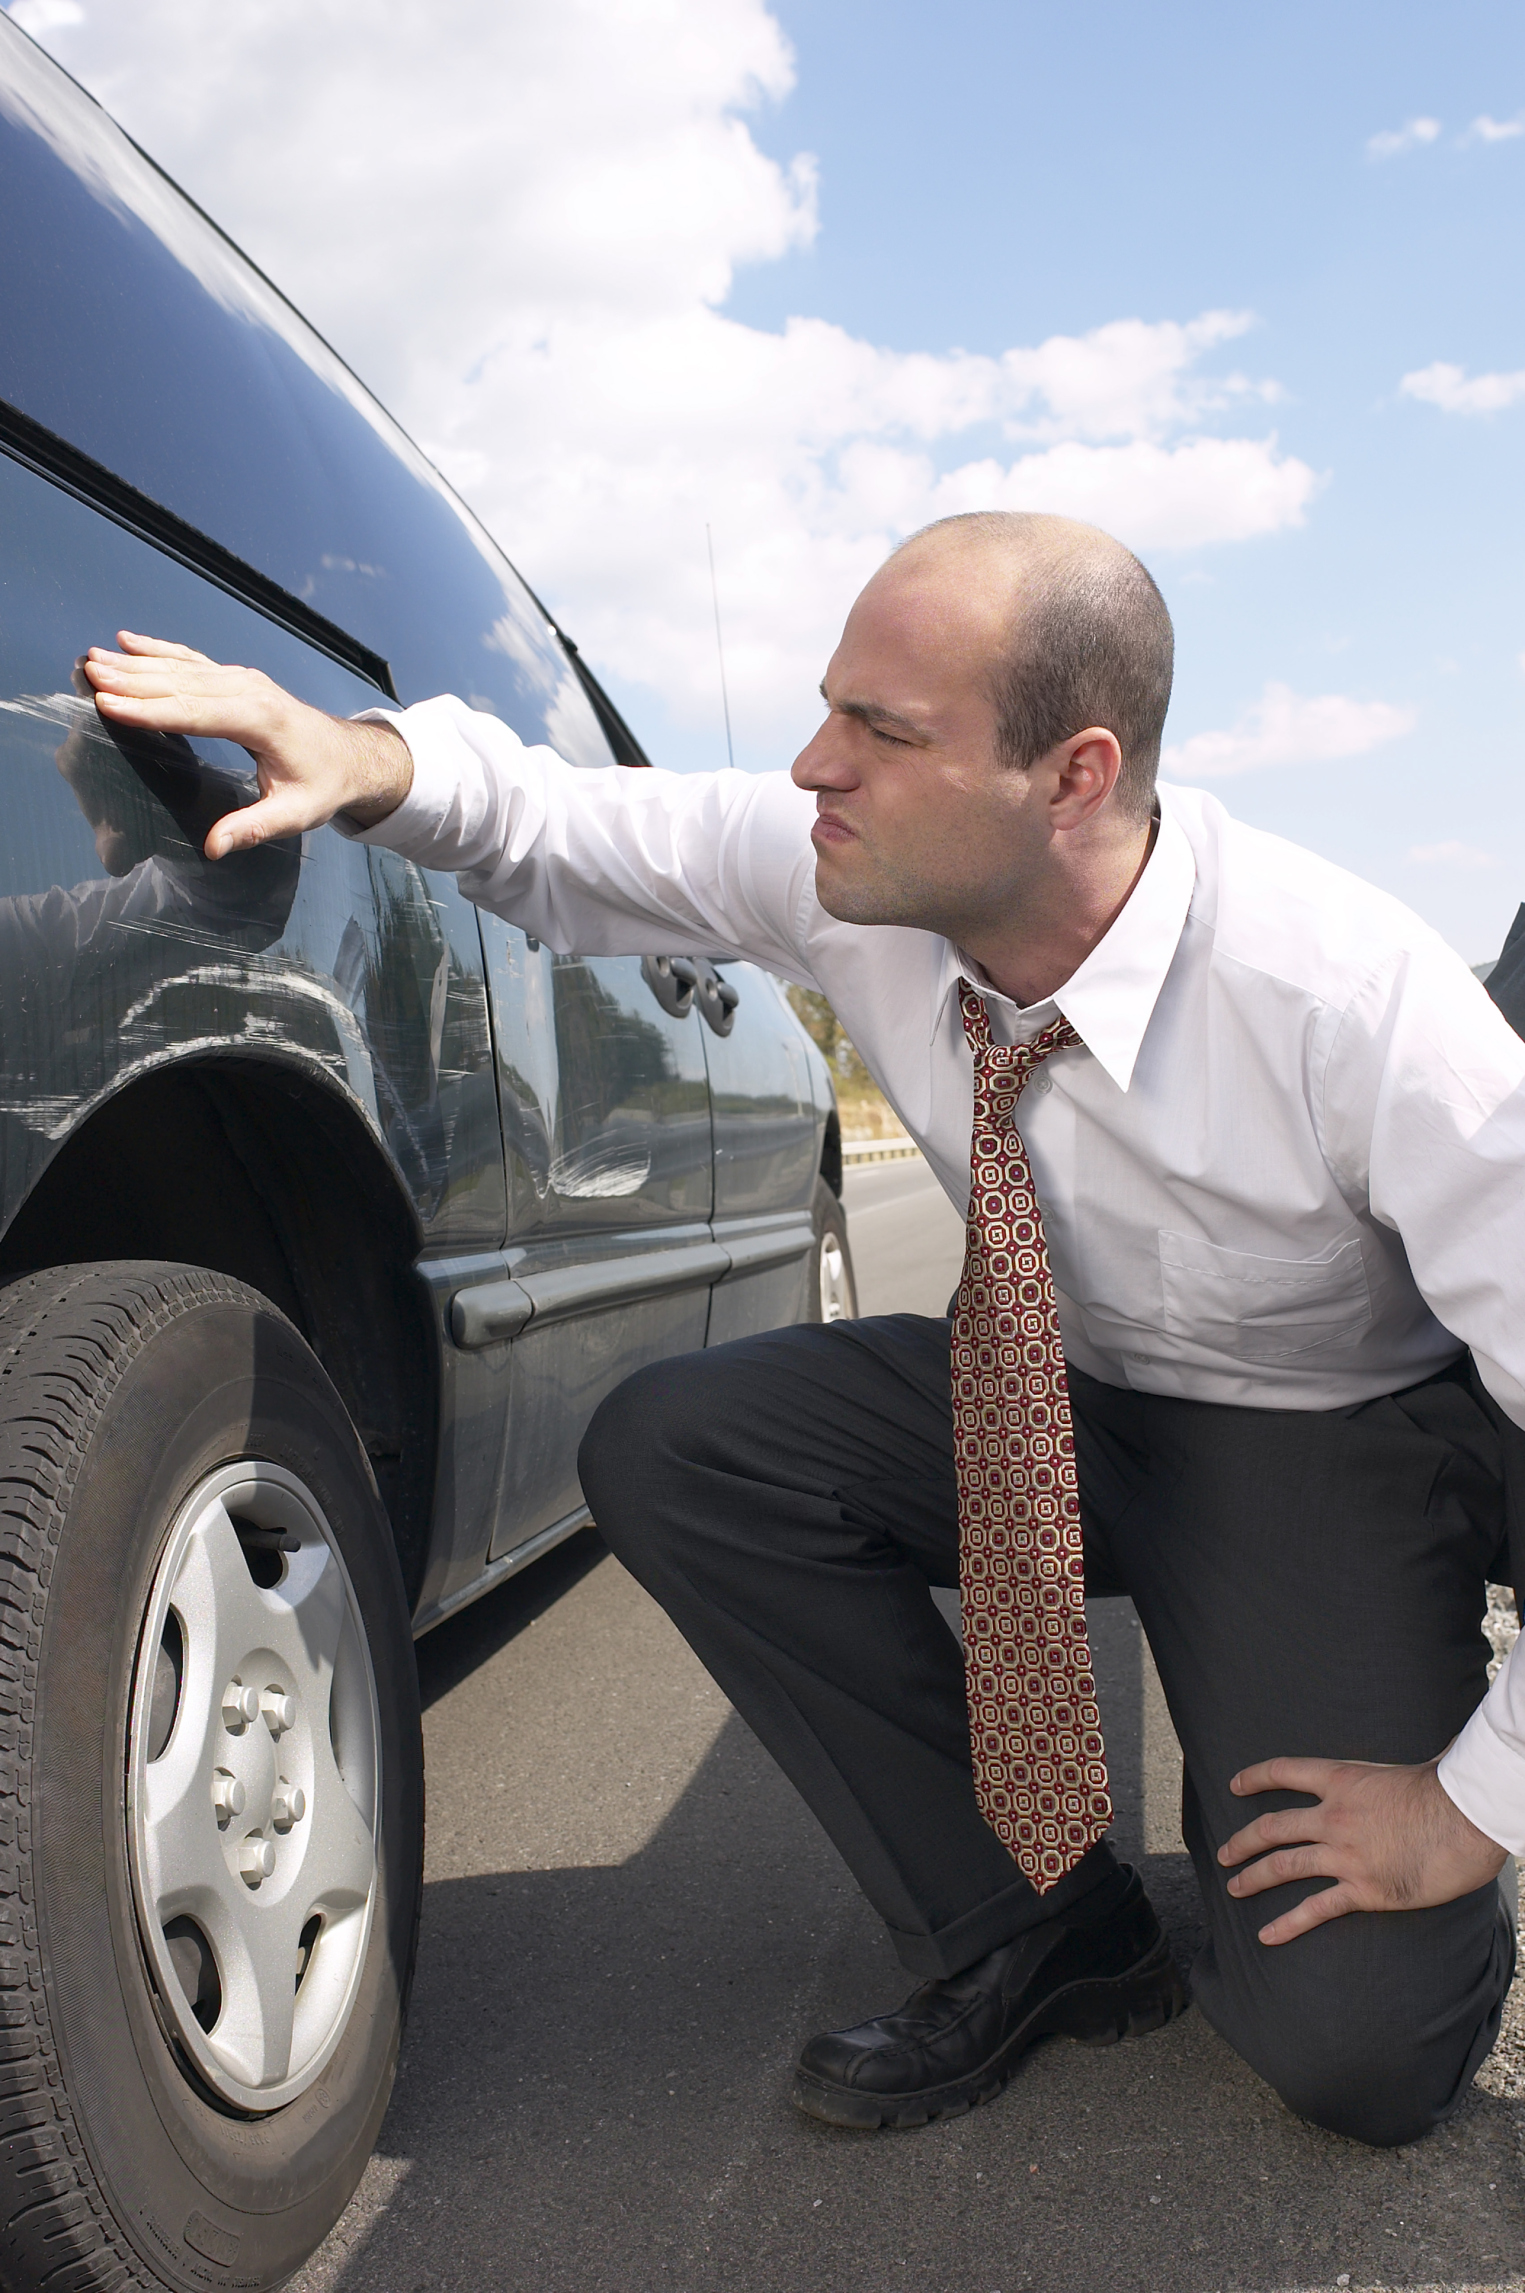 What To Do About That Fender Bender